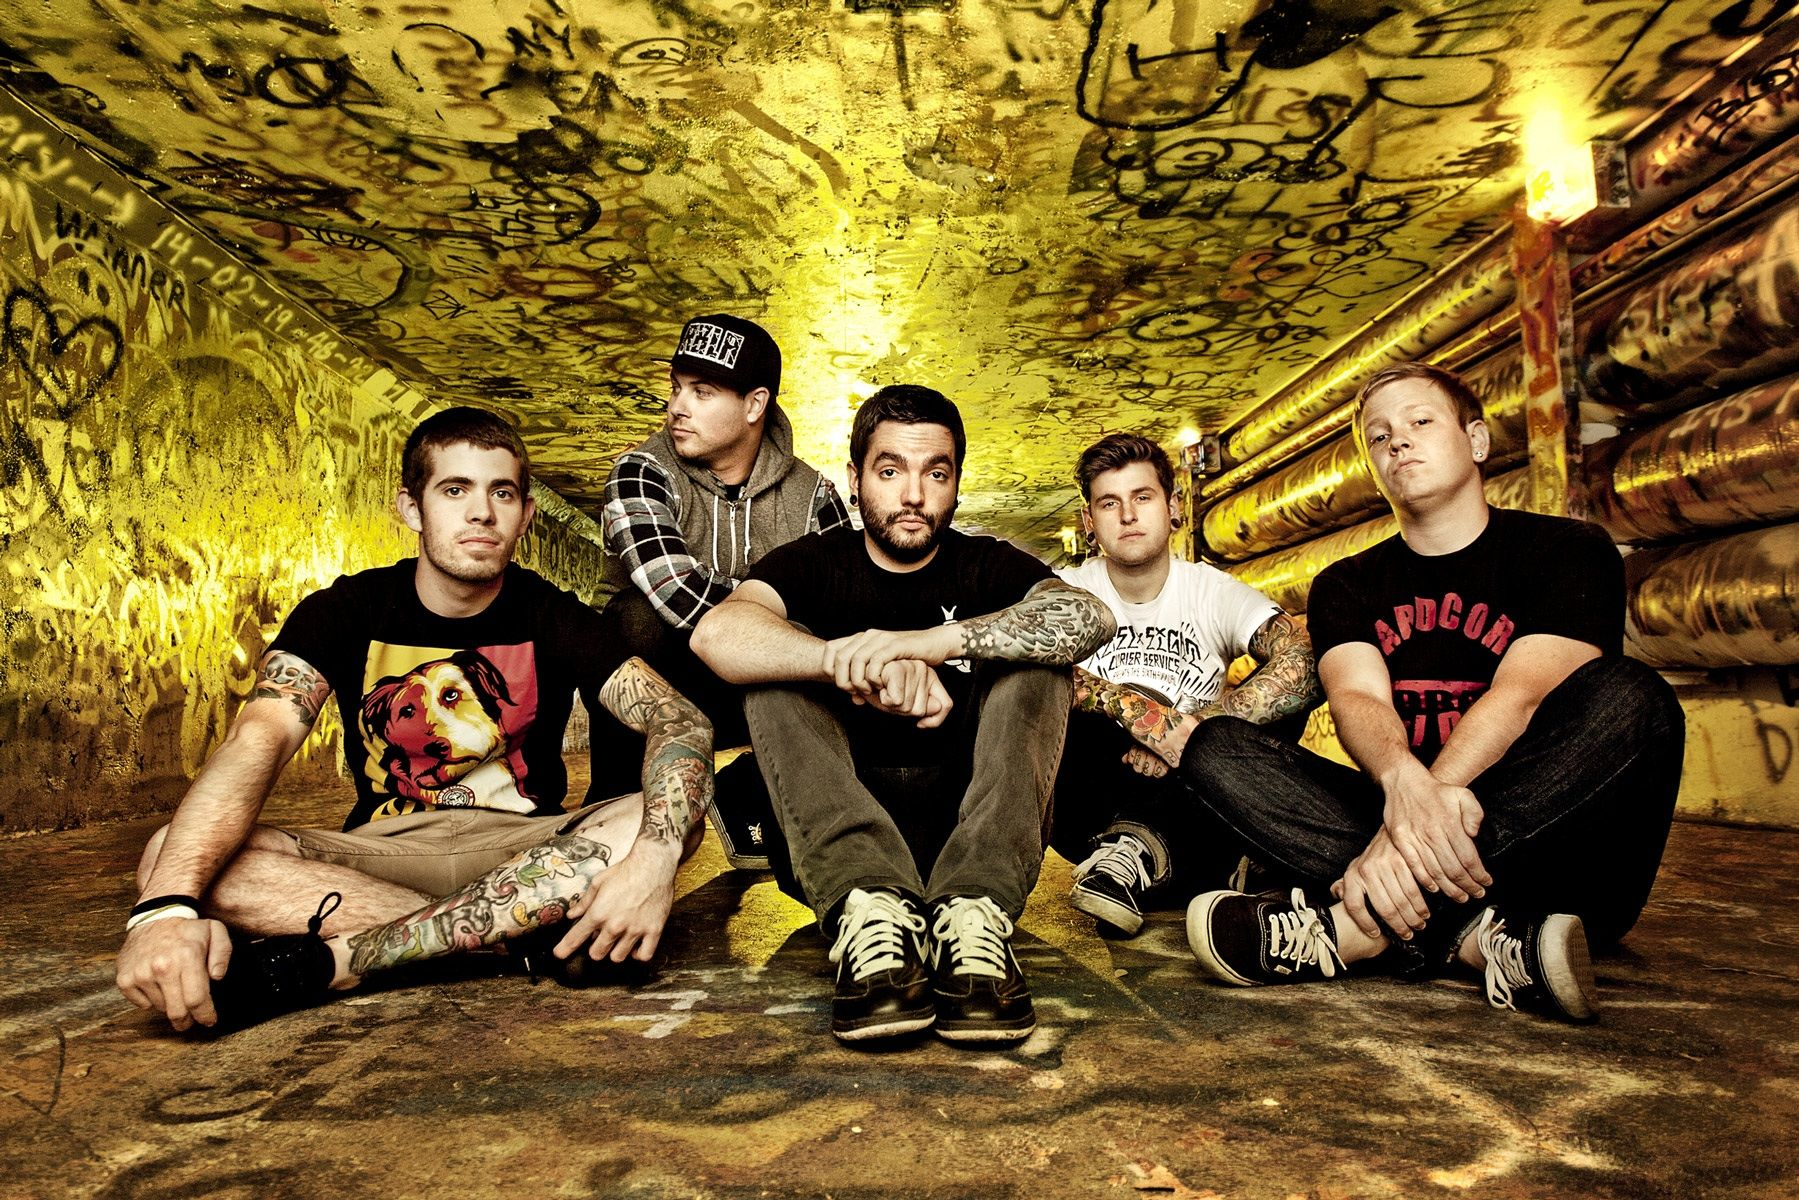 name a day to remember wallpaper 1923 category a day to remember image 1799x1200